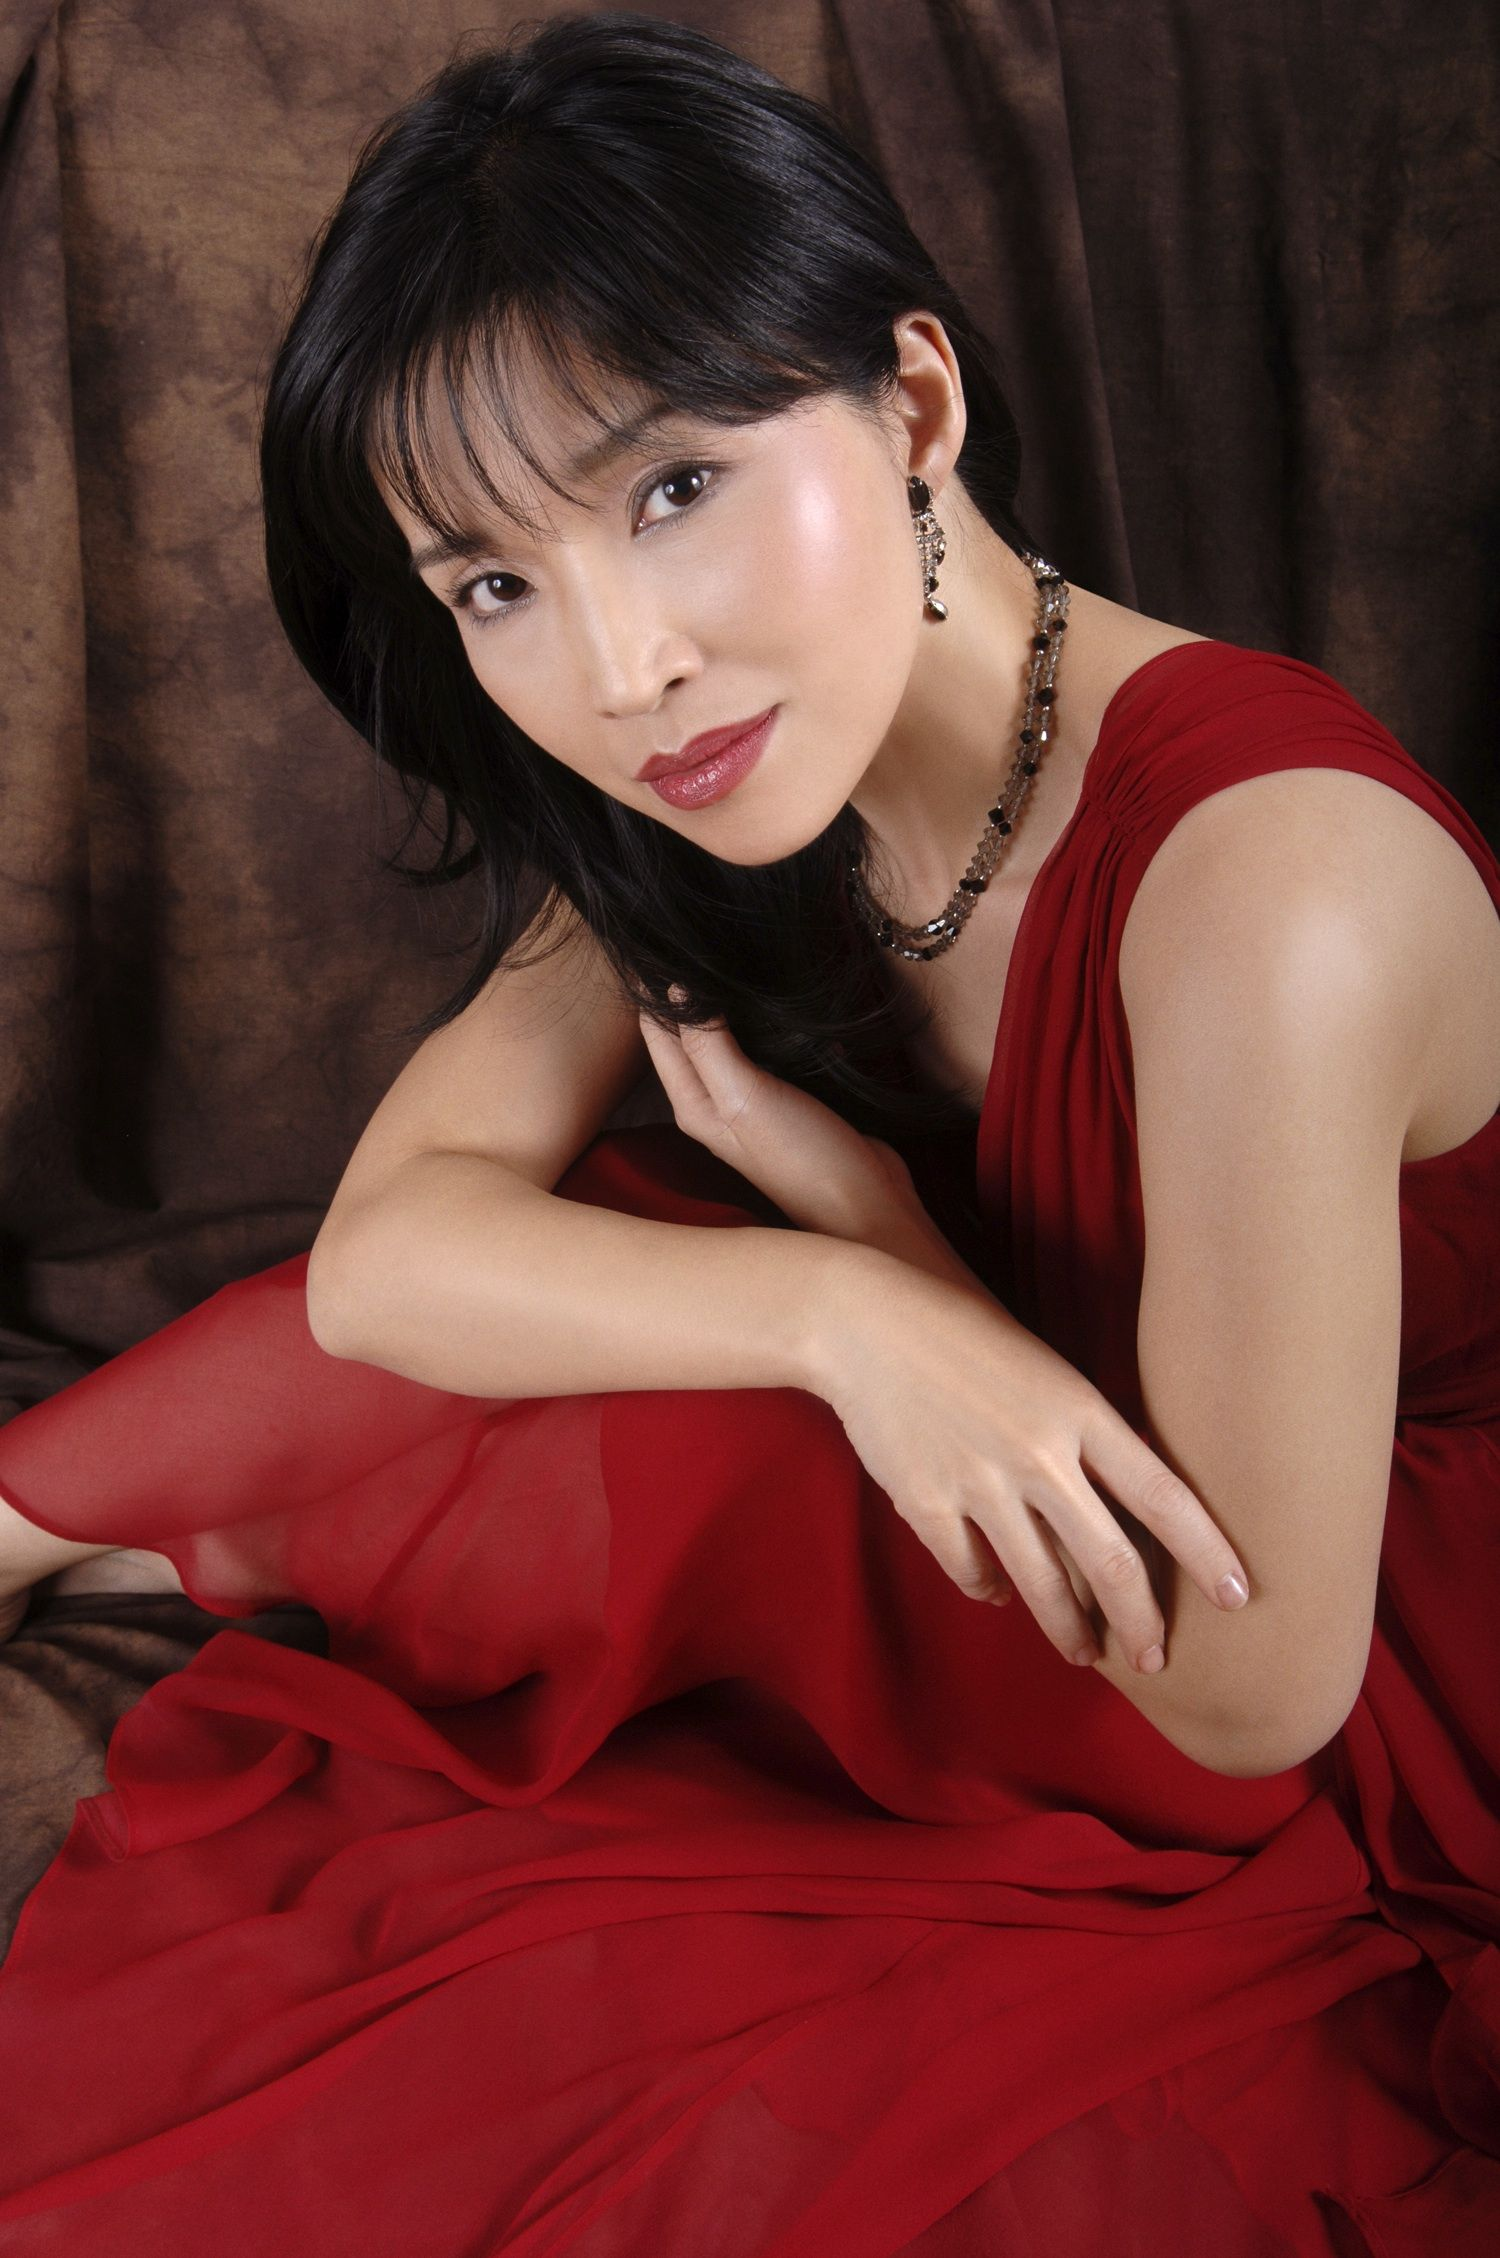 Keiko Matsui An Exceptional Jazz Pianist Click On The Pic To